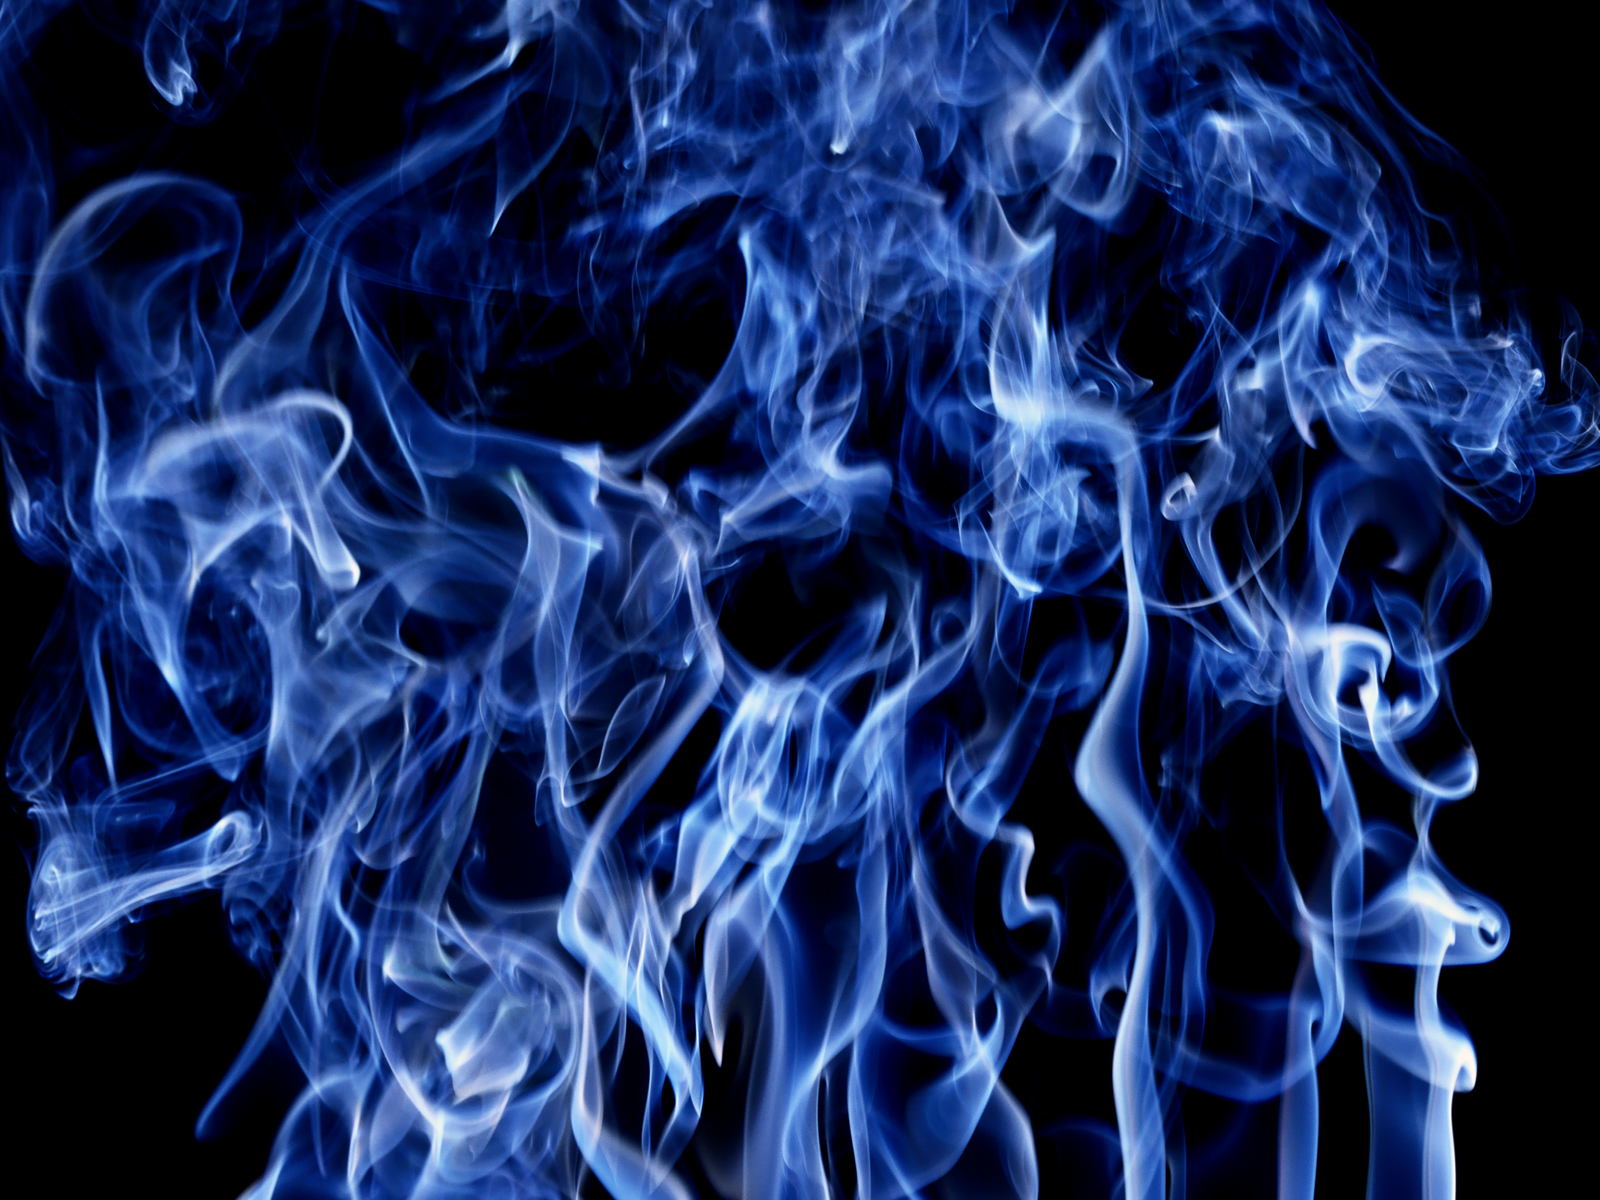 hd wallpaper wallpaper smoke black blue light background computer 1600x1200